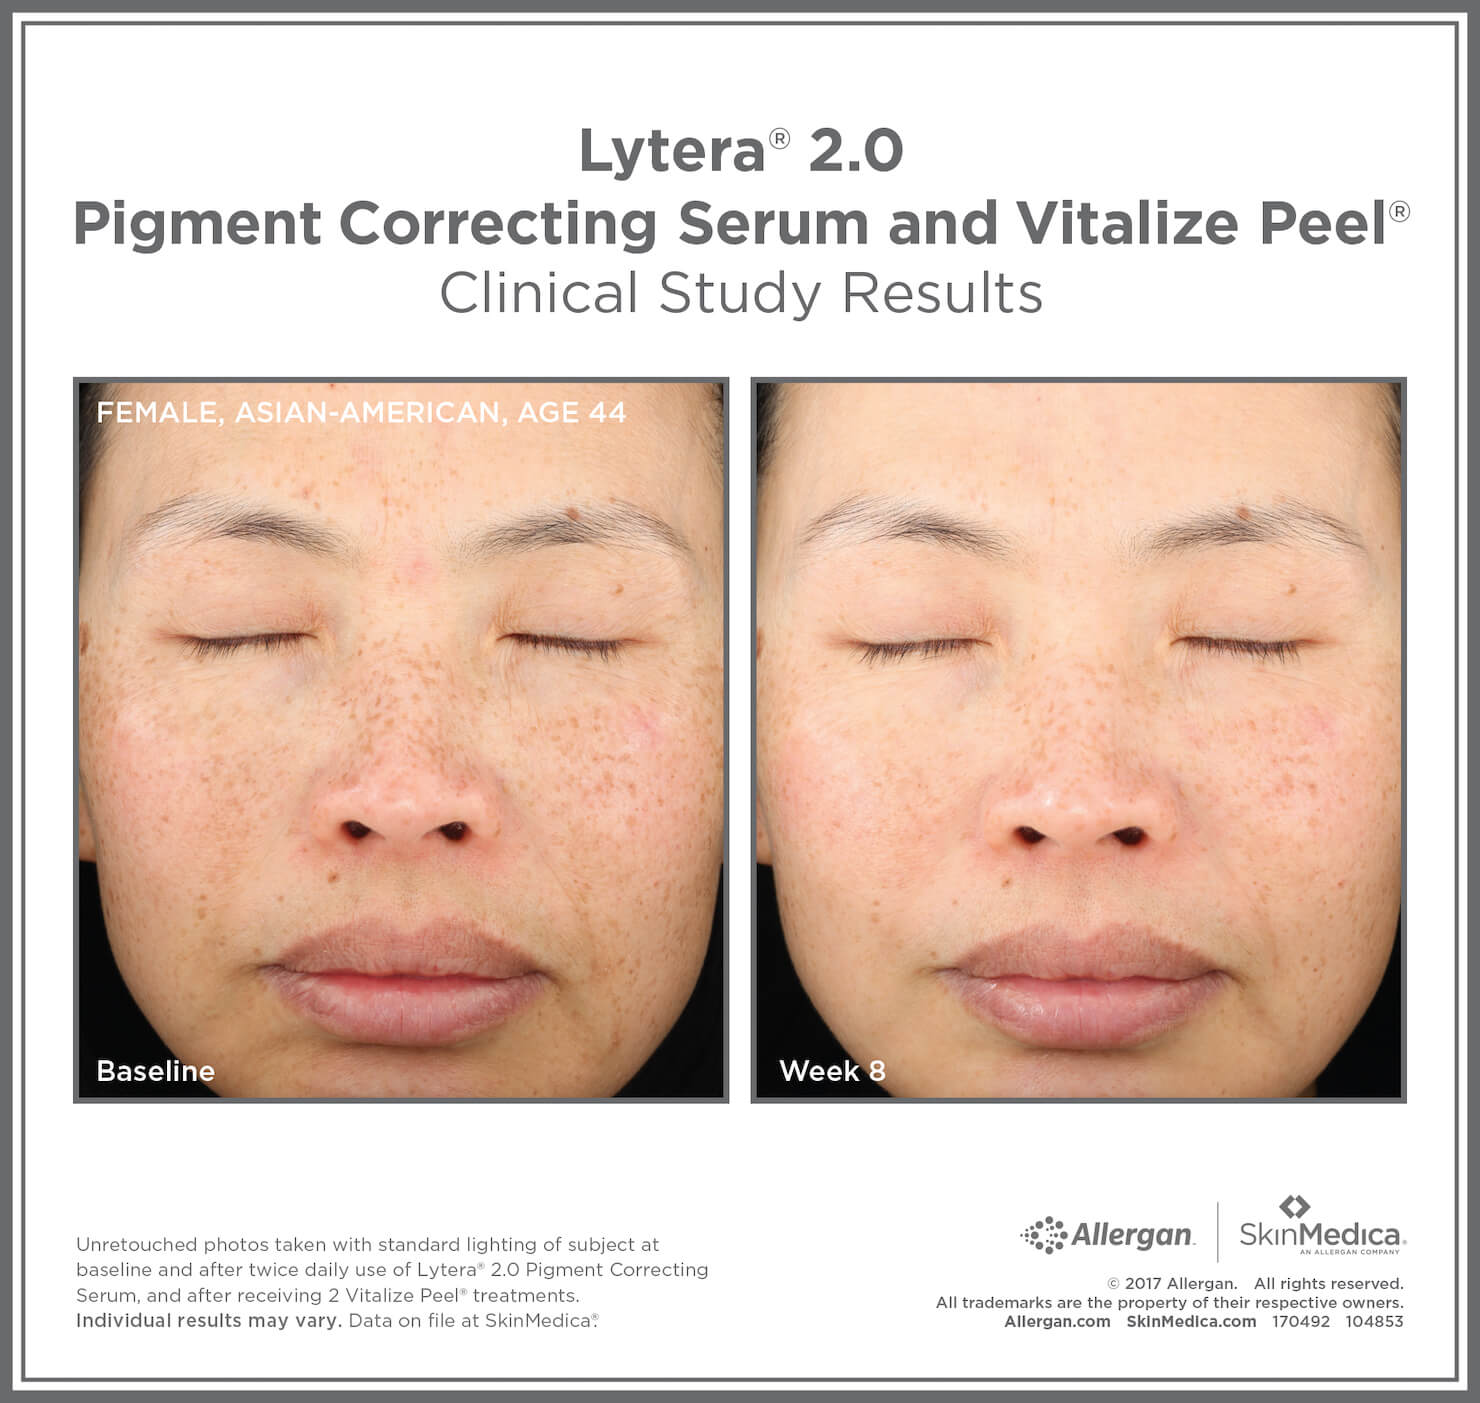 SkinMedica Before and After photo of Lytera 2.0 Pigment Correcting Serum with Vitalize Peel - high end skincare results from clinical study